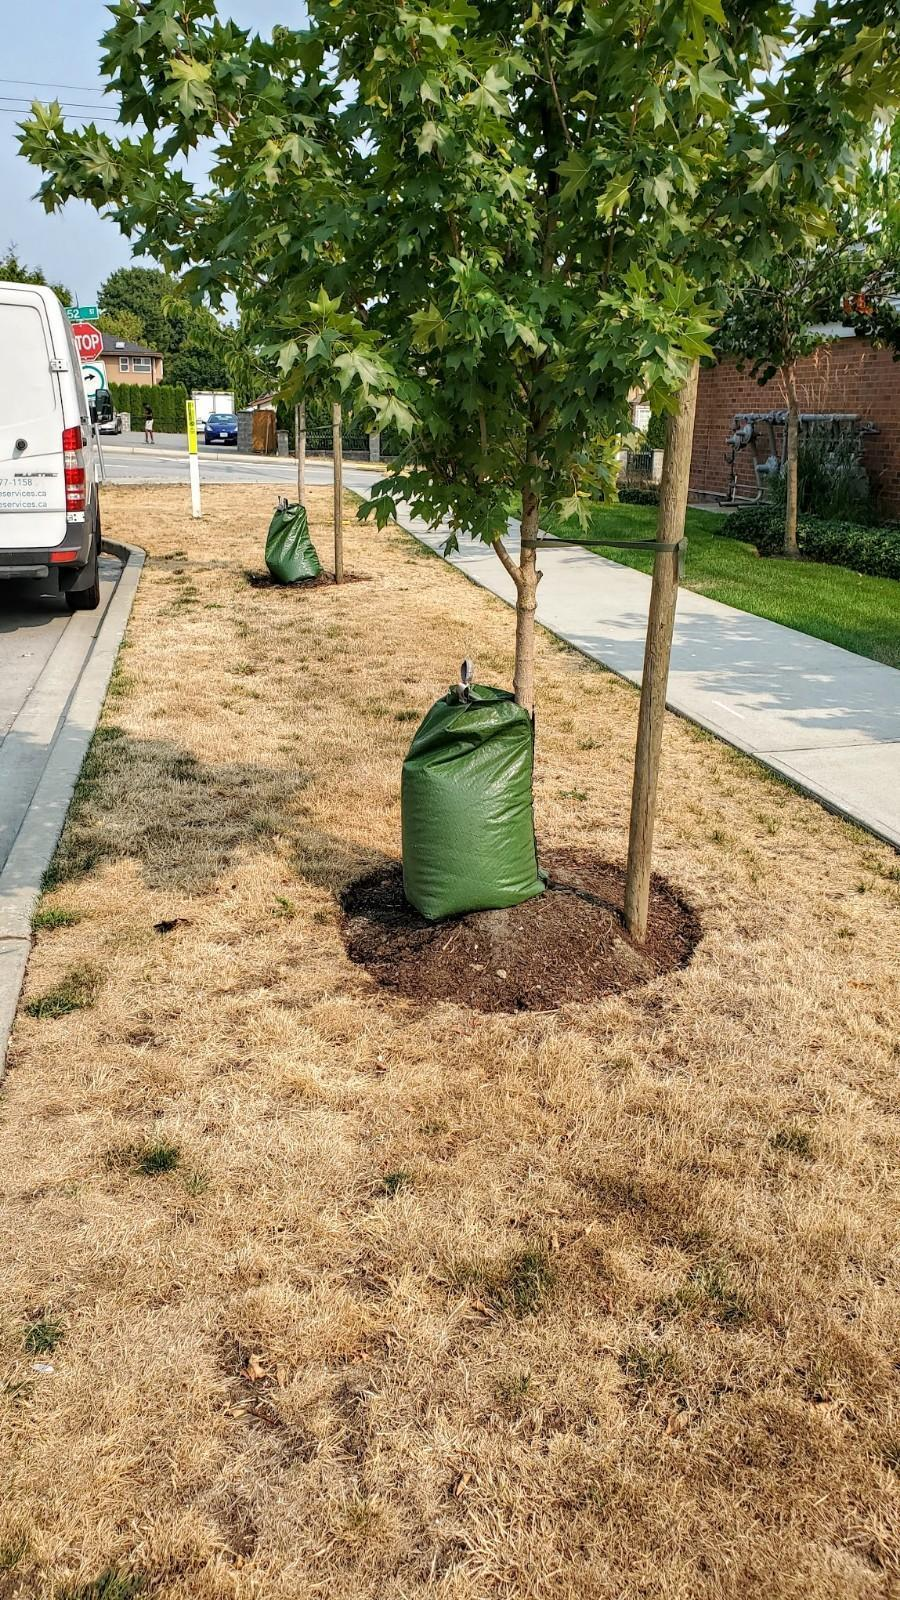 tree watering bags hang and pull on young trees when they don't drain properly